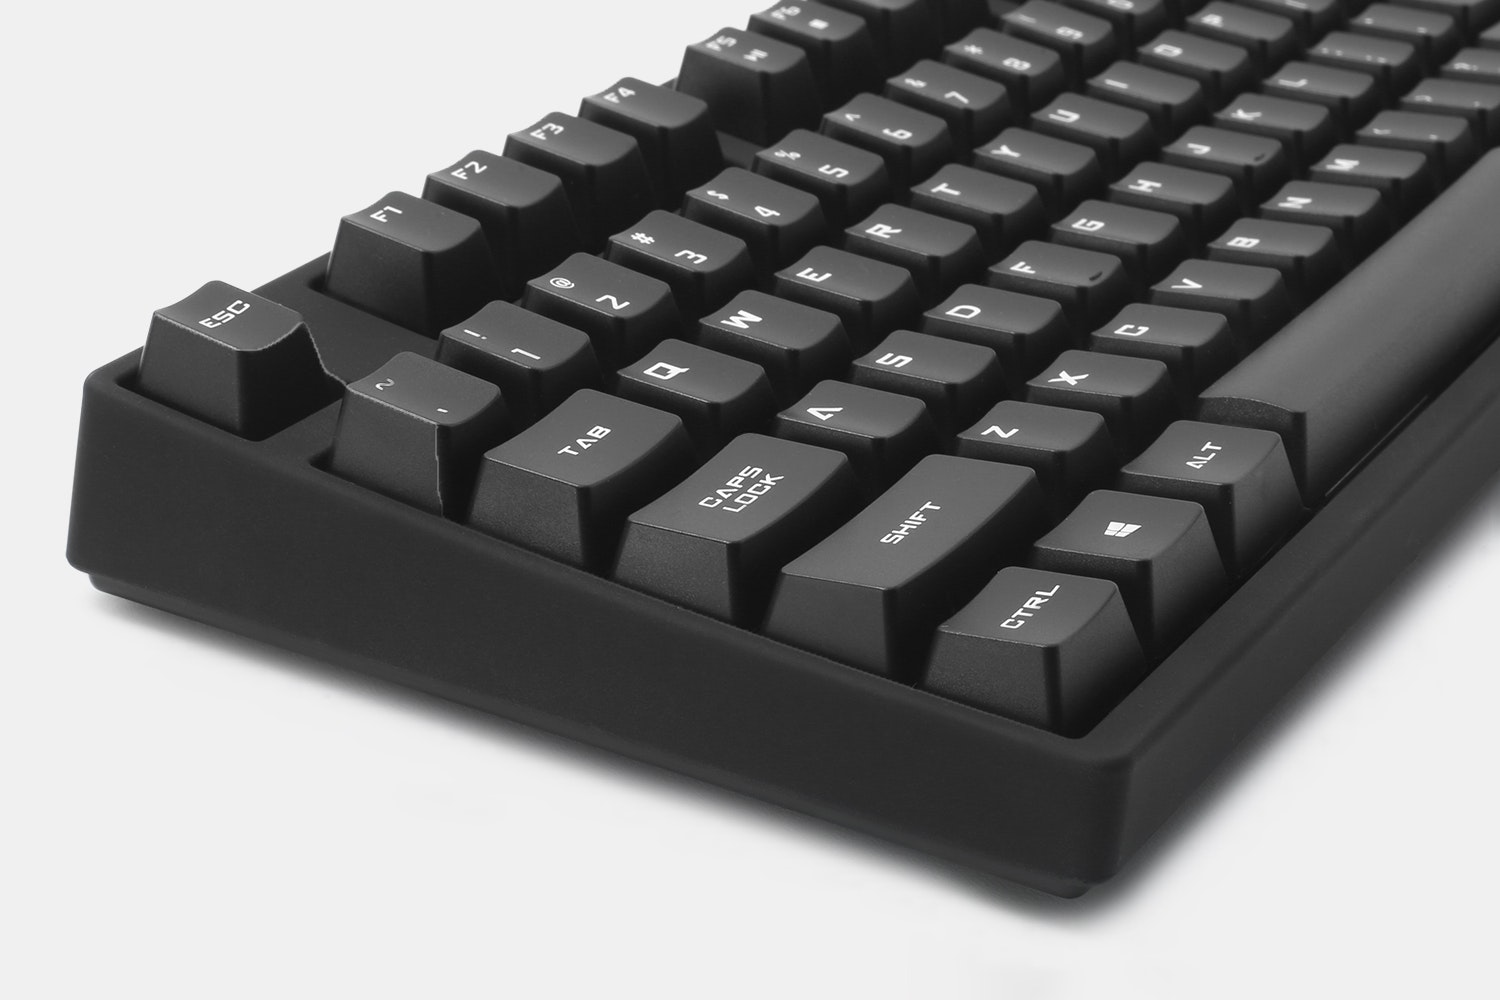 Cooler Master QuickFire XT Mechanical Keyboard